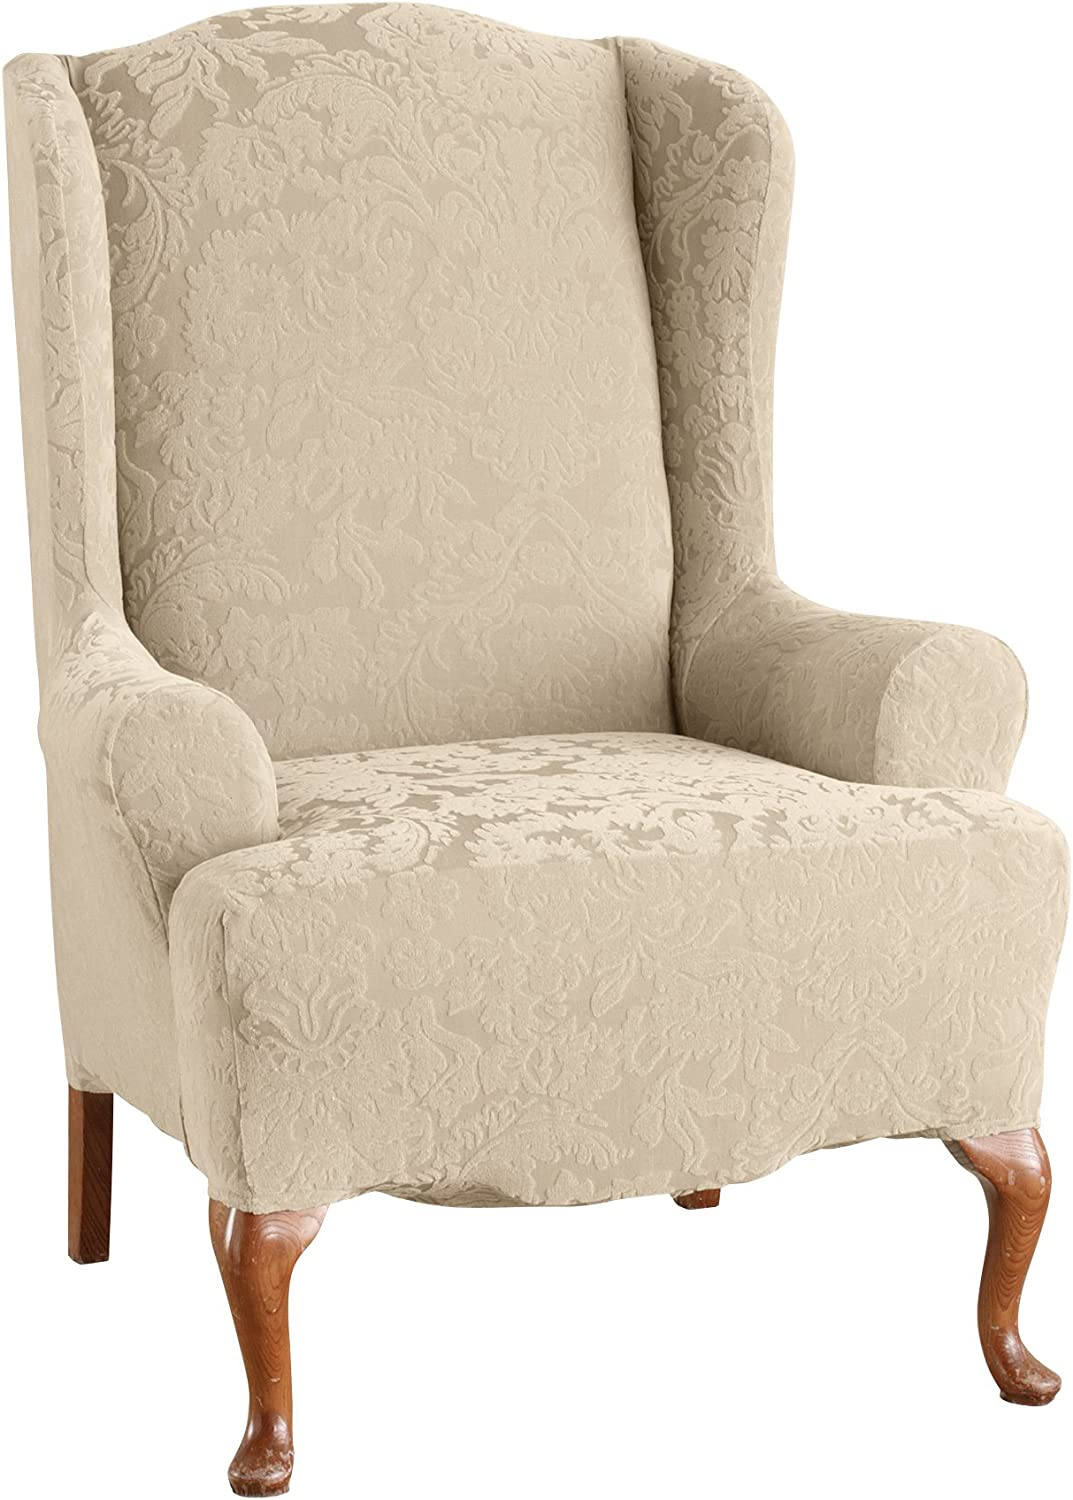 SureFit Stretch Jacquard Damask - Wing Chair Slipcover- Oyster (SF39613)